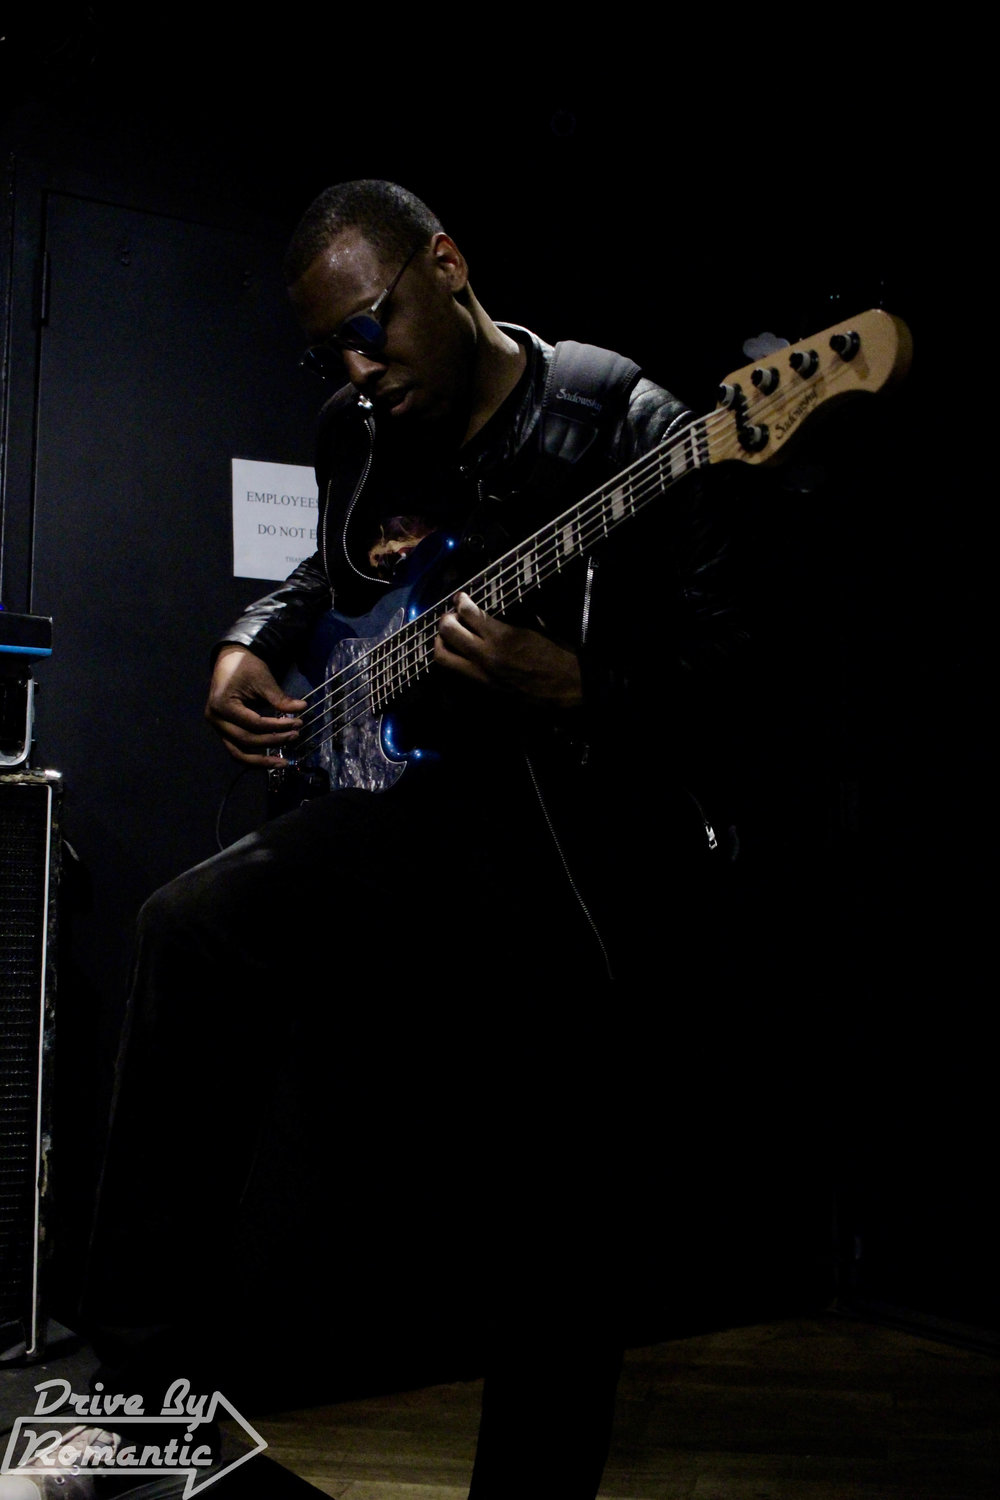 Bassist Shelley Shellz